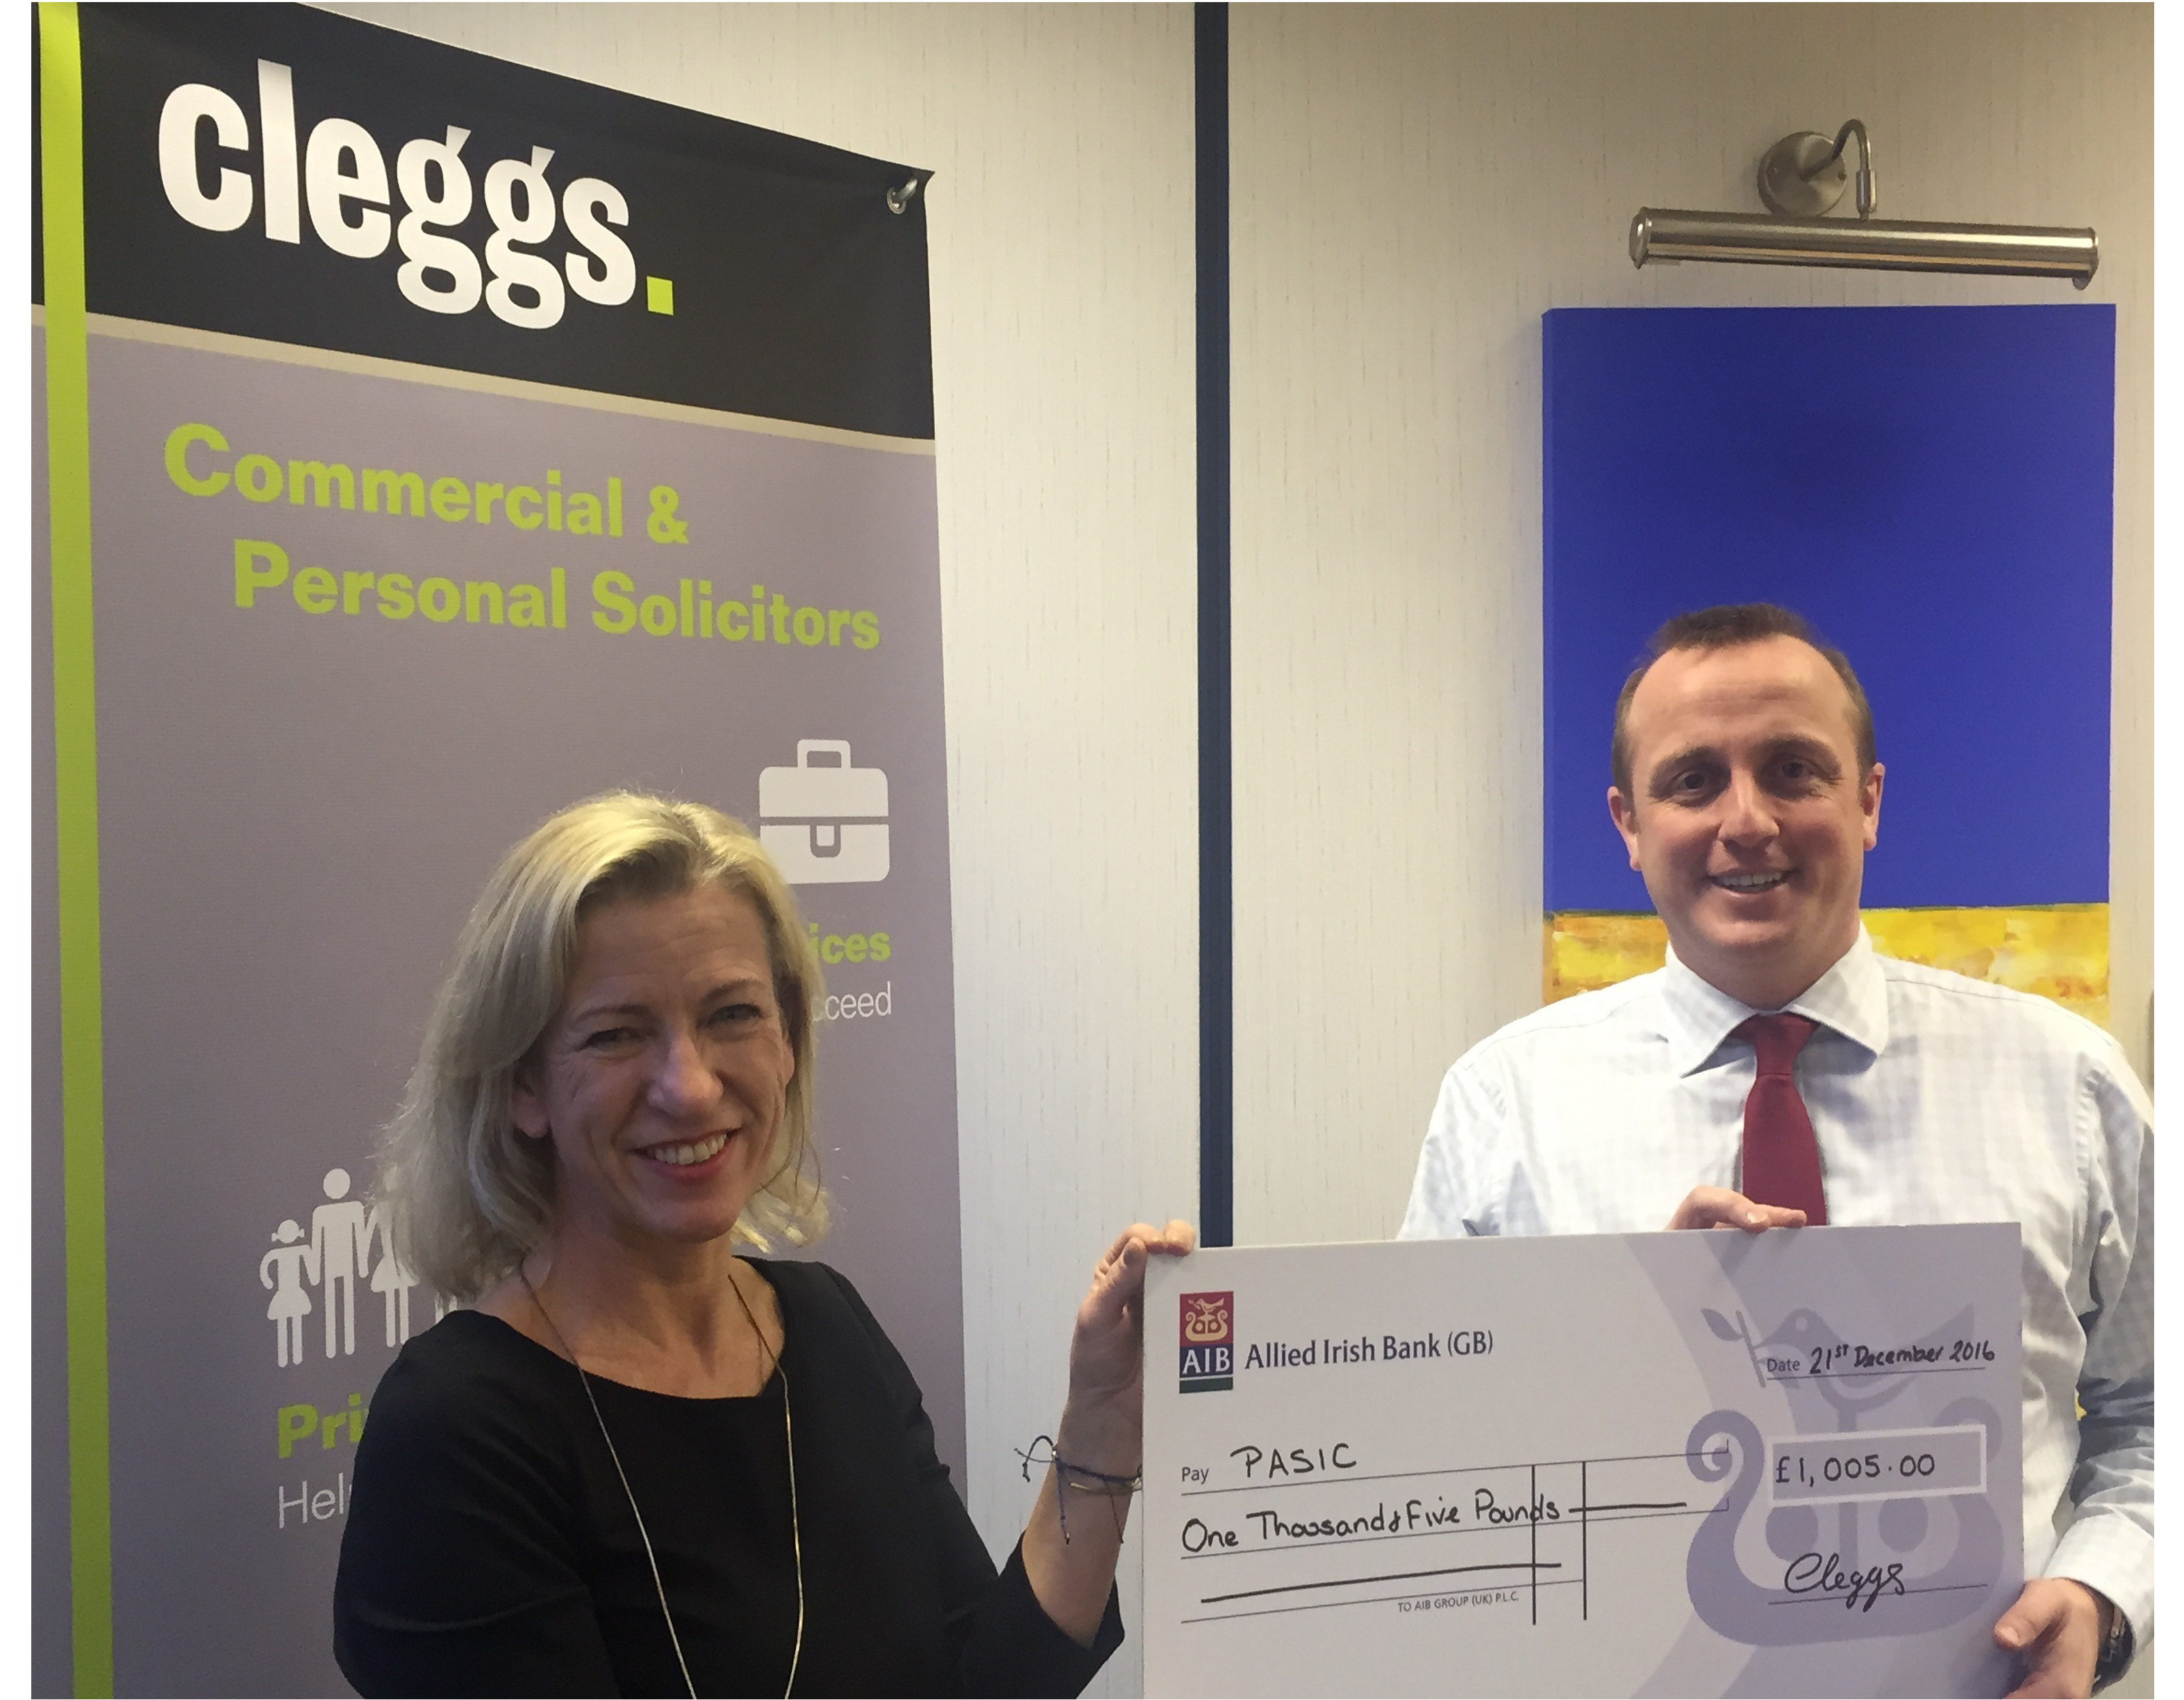 Phil Pheasey raises more than £1,000 for children's charity